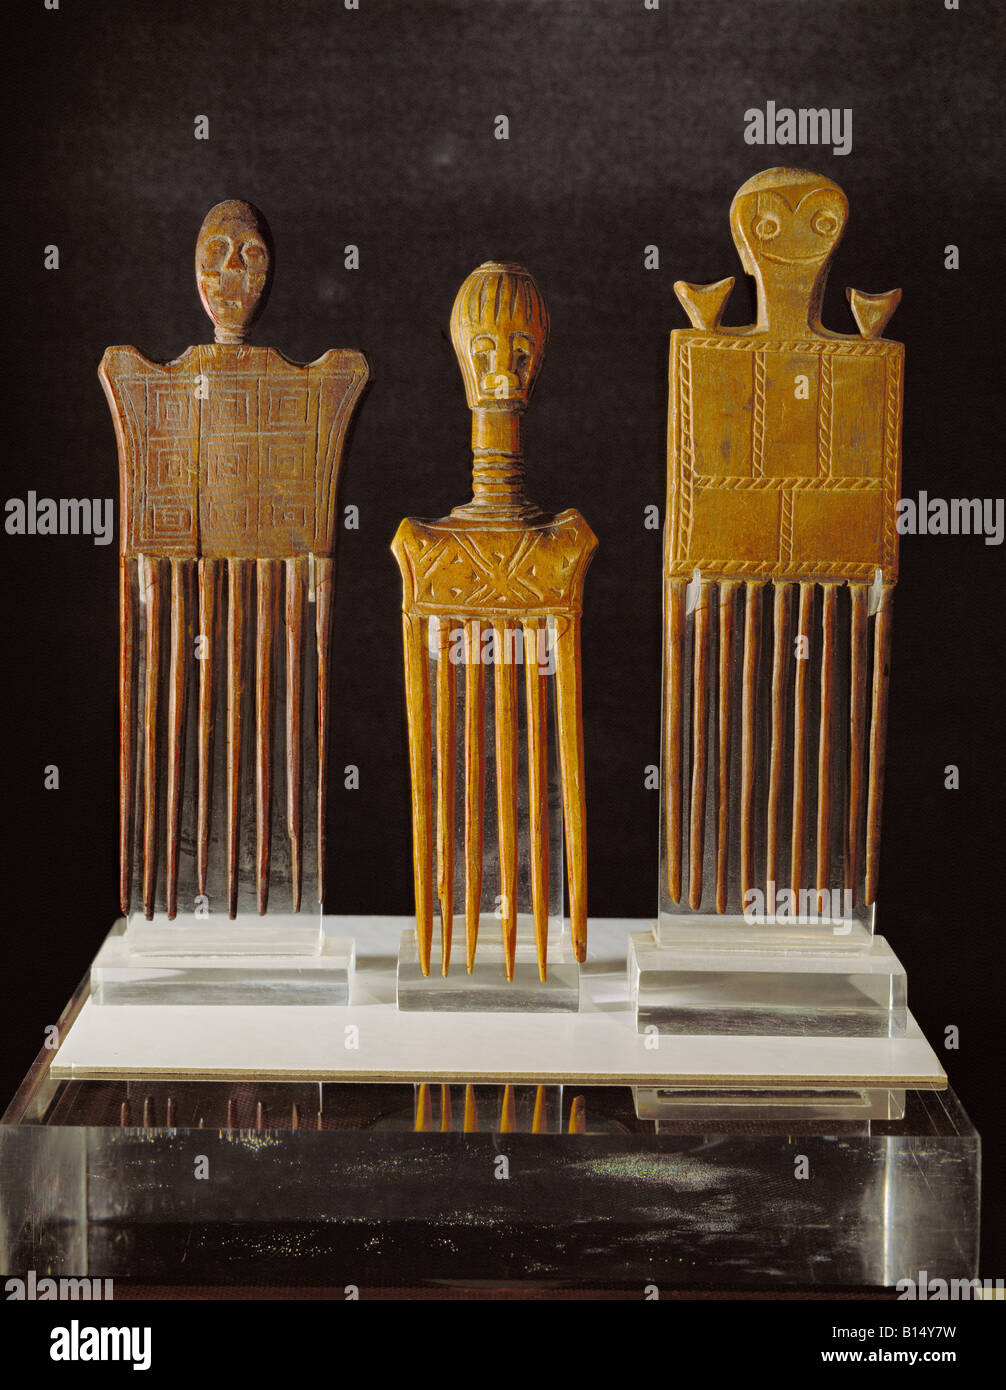 fine arts, Africa, combs, wood, left: Ashanti, right: Akan, Ivory Coast and Ghana, , Artist's Copyright has - Stock Image